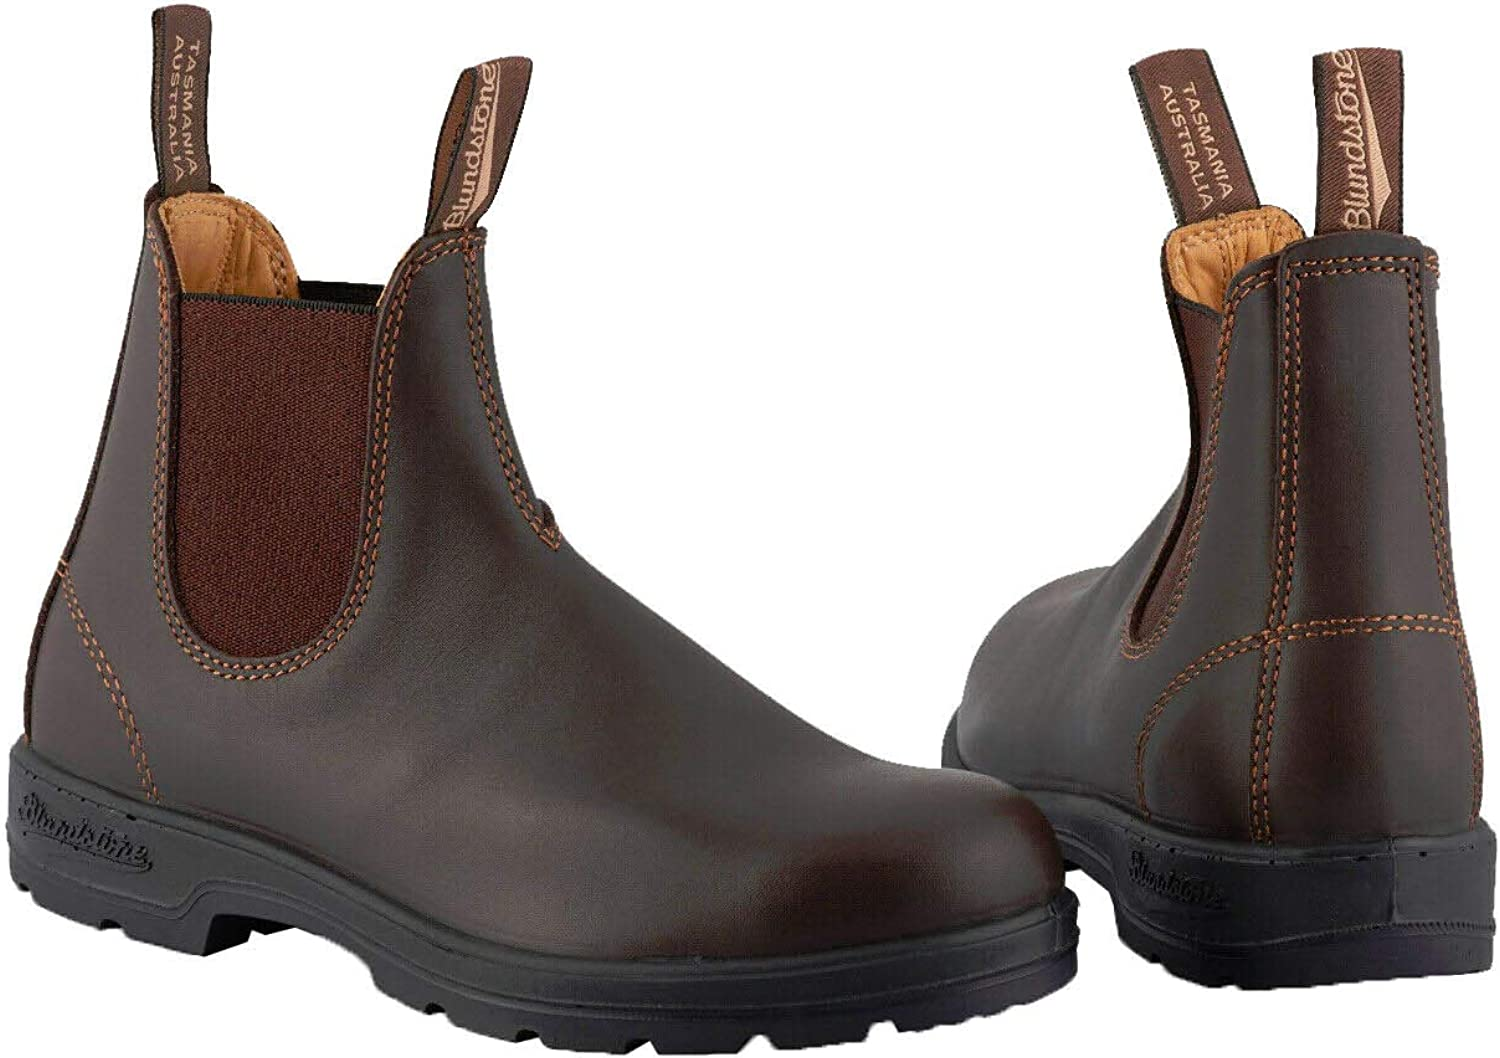 Blundstone 550 Mens Chelsea Boots Walnut Brown Leather Dress Casual Slip On Boot